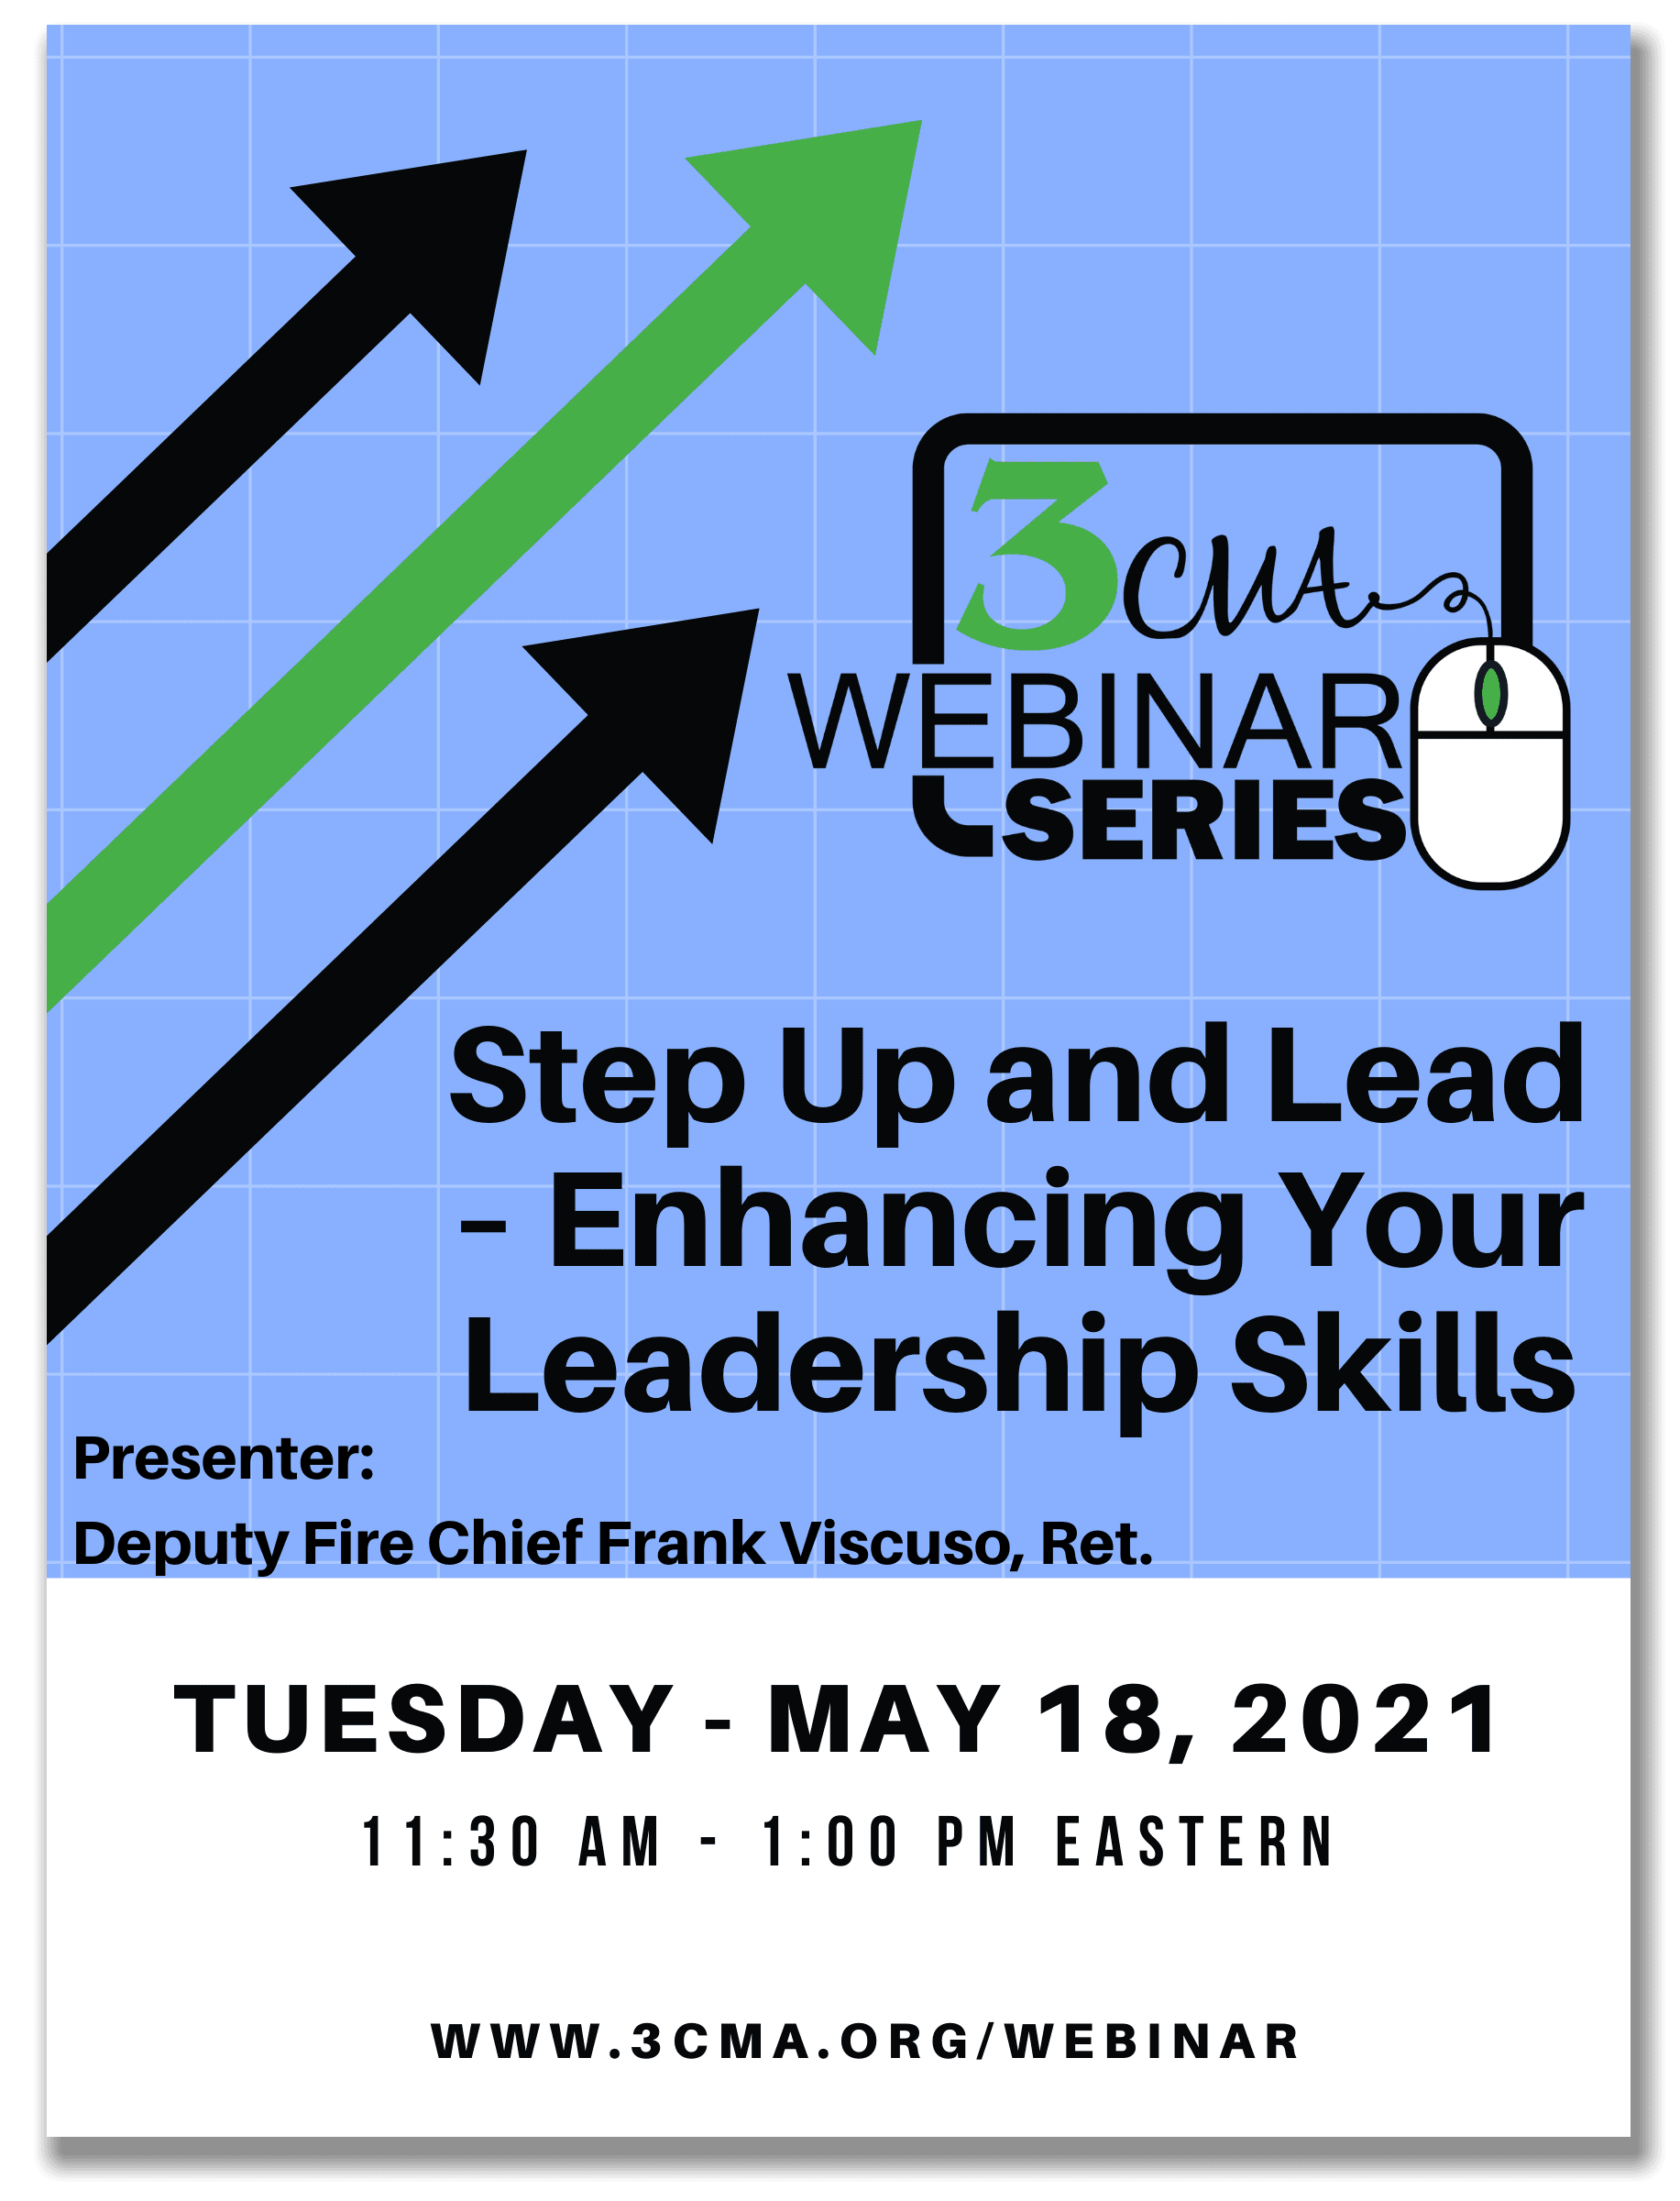 Step Up and Lead Webinar